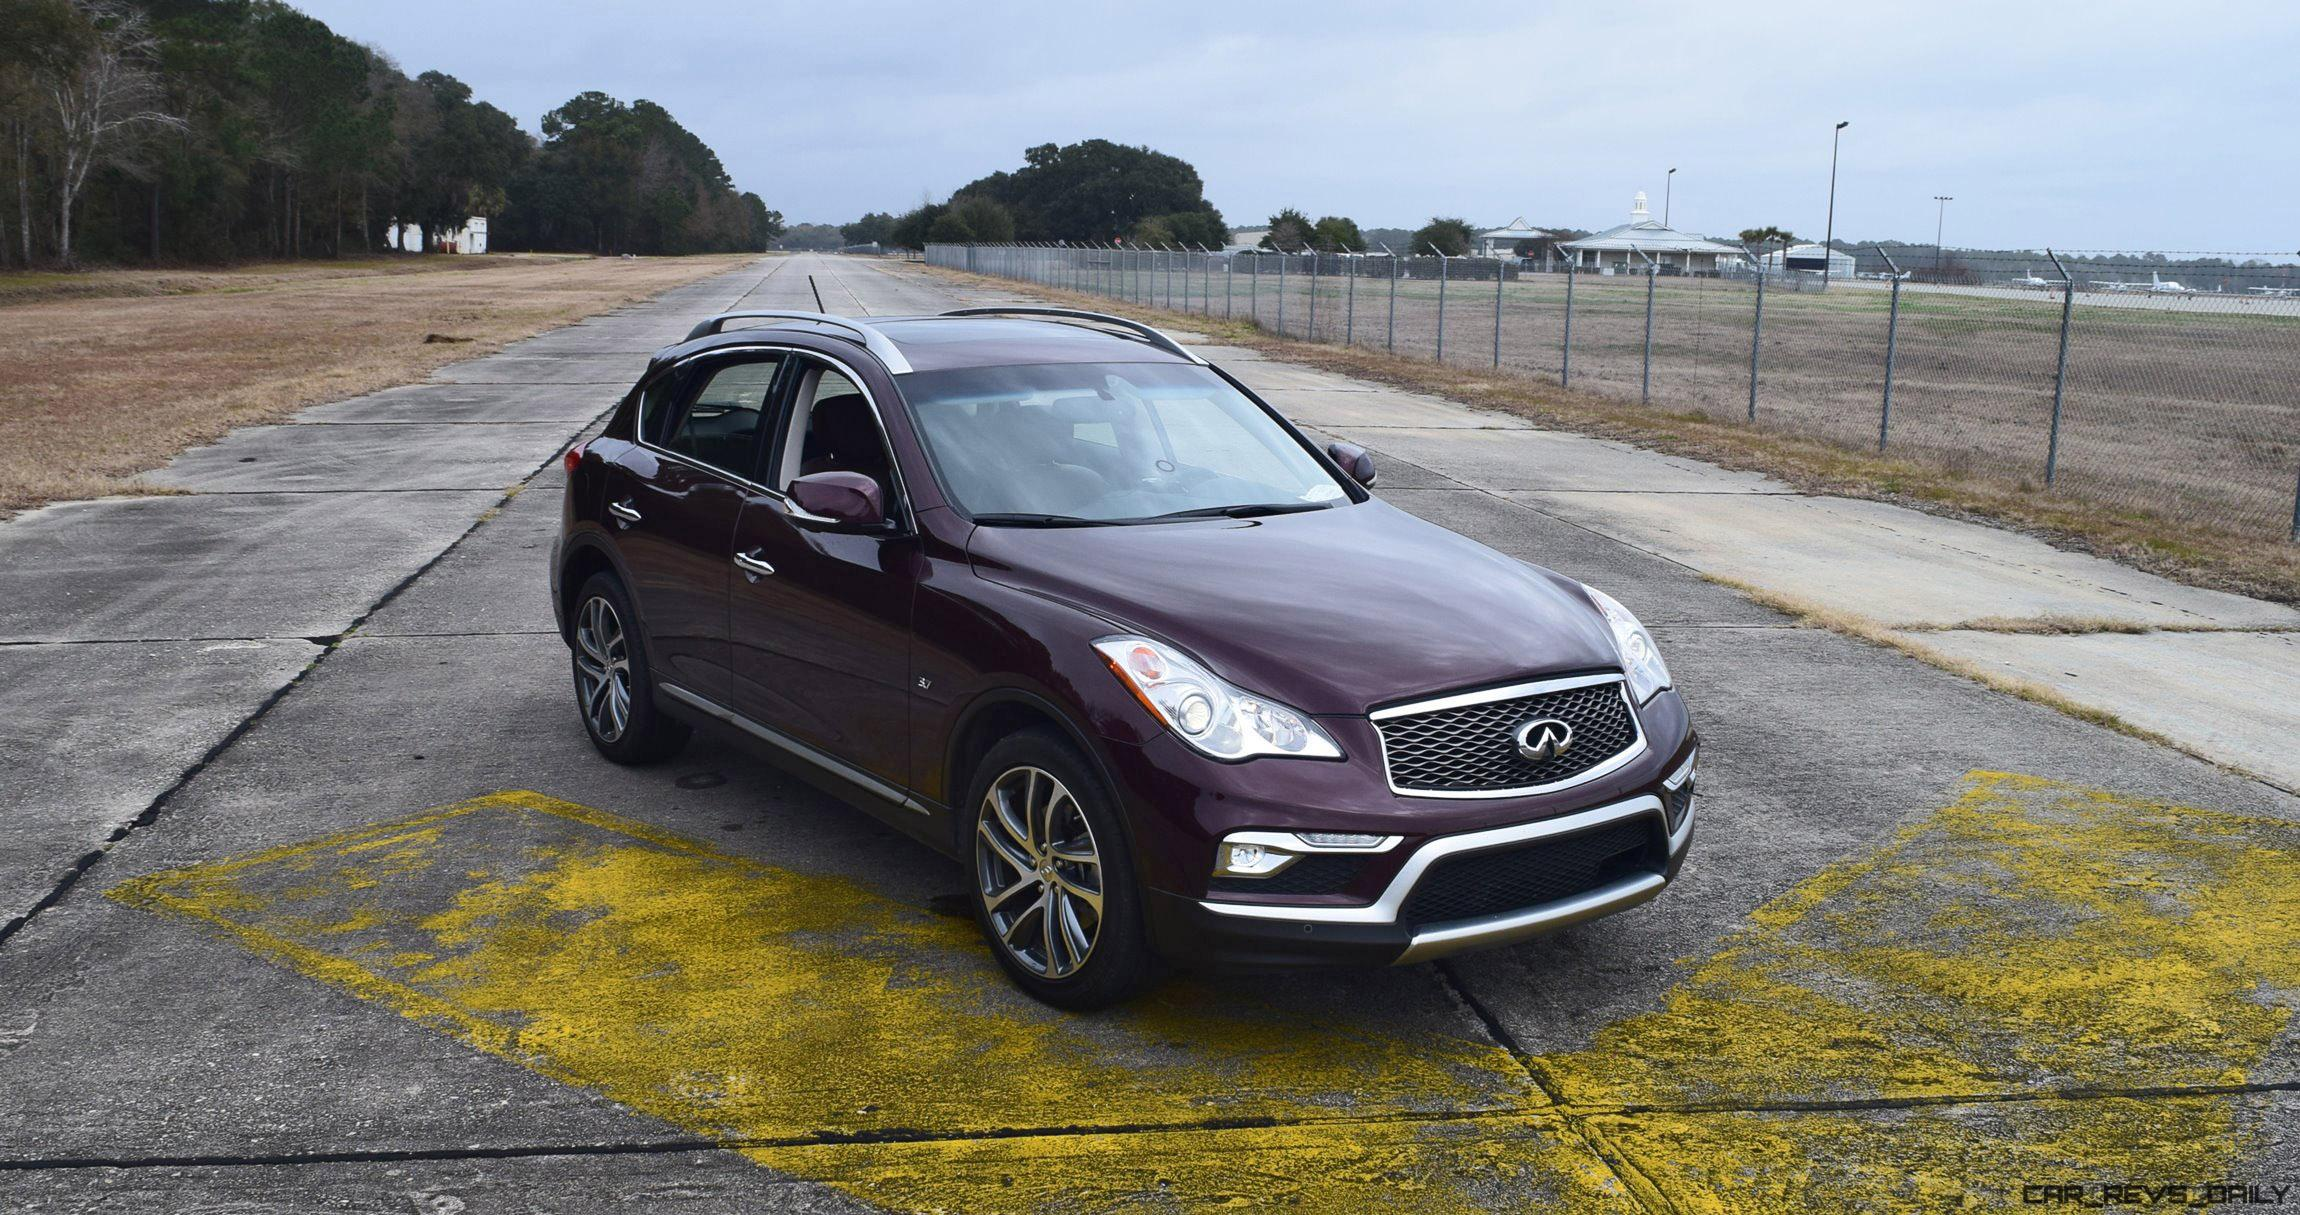 exterior world compression first photo s review infiniti engine is variable